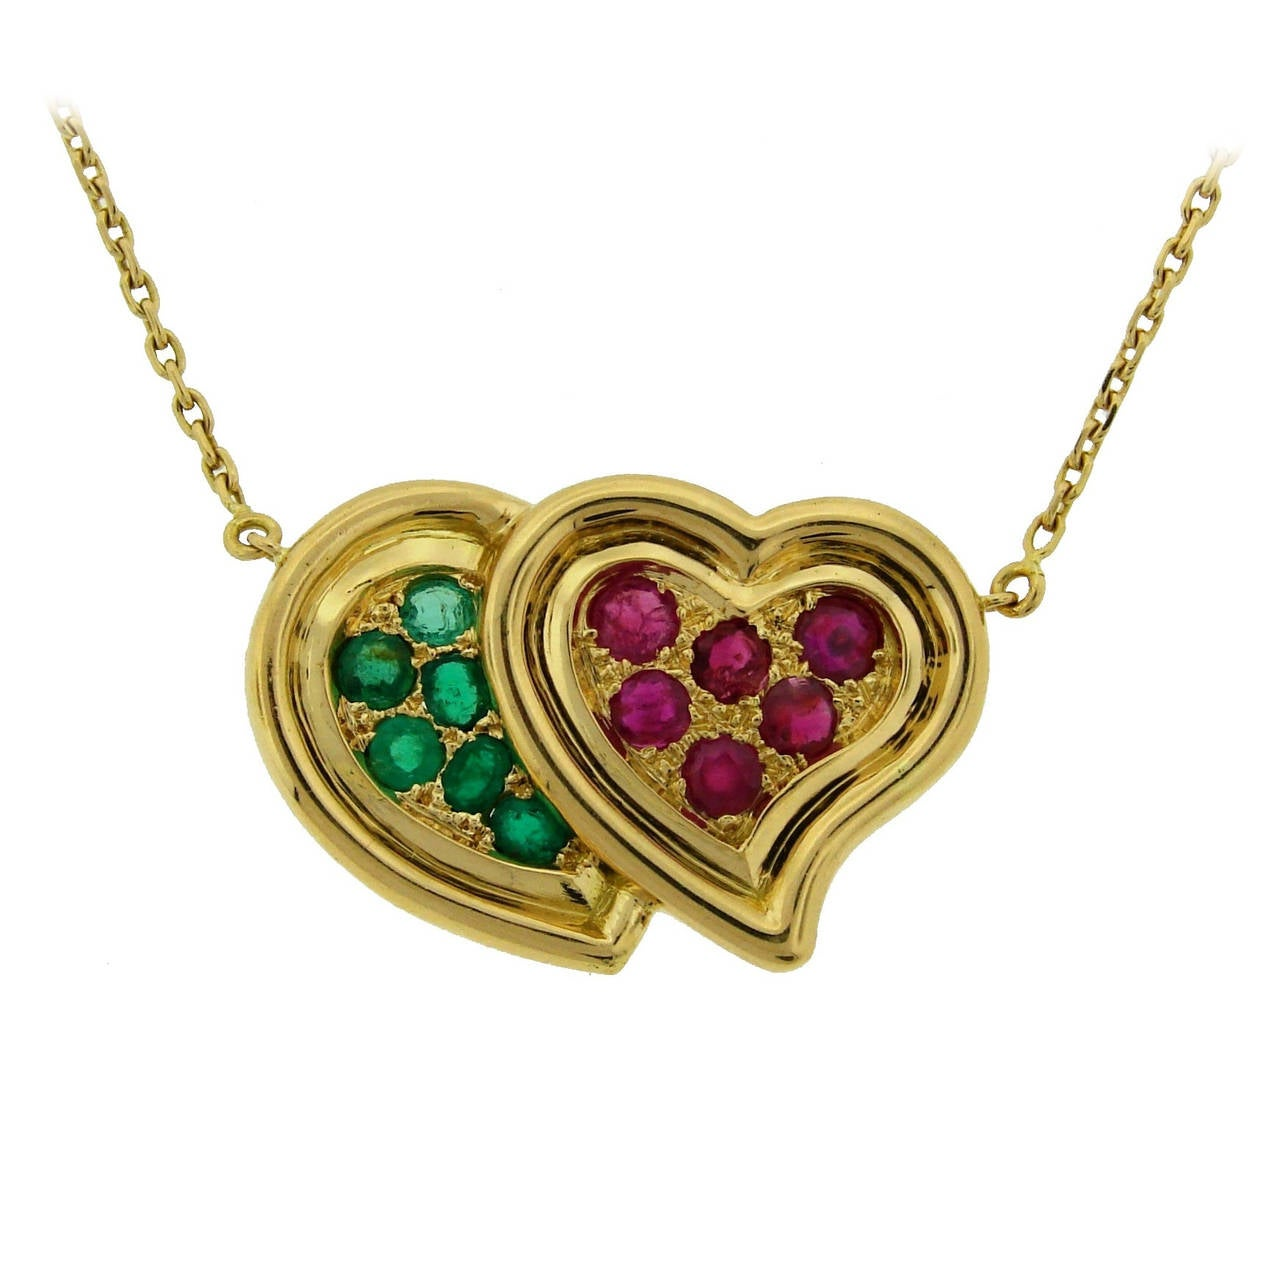 1950s rene boivin ruby emerald yellow gold heart pendant necklace 1950s rene boivin ruby emerald yellow gold heart pendant necklace for sale aloadofball Gallery